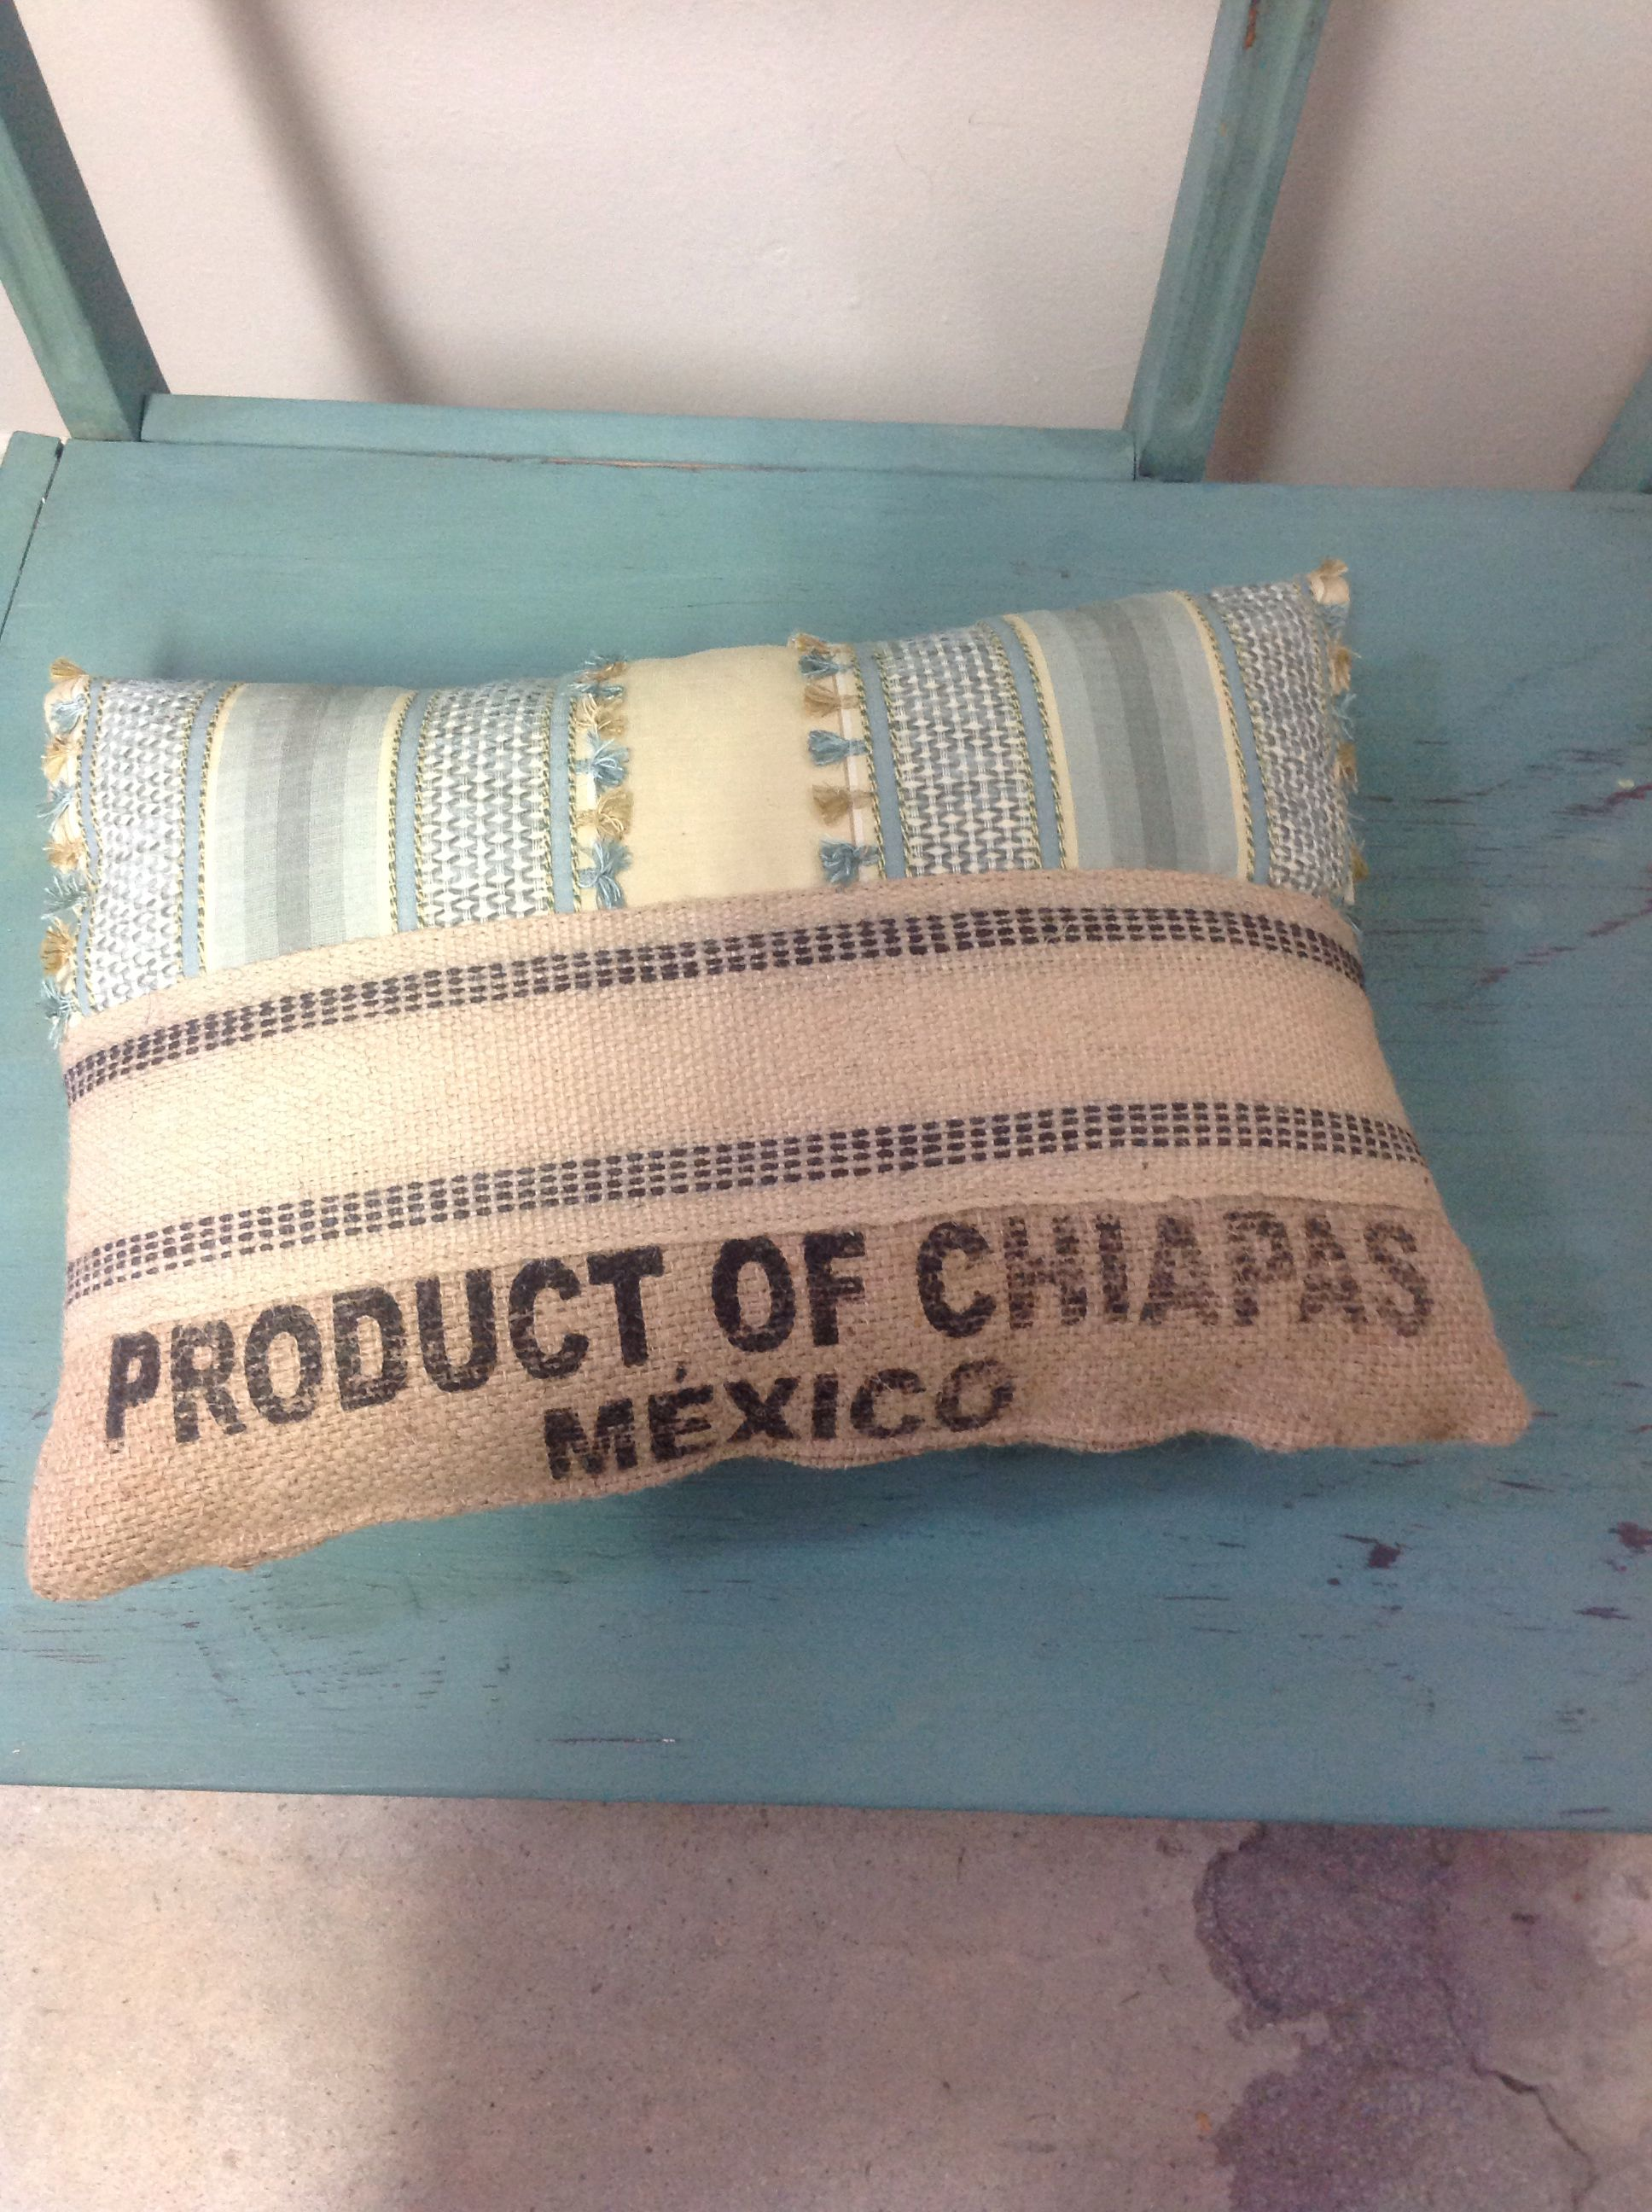 Designs by Boho Upcycle http://bohoupcycle.com